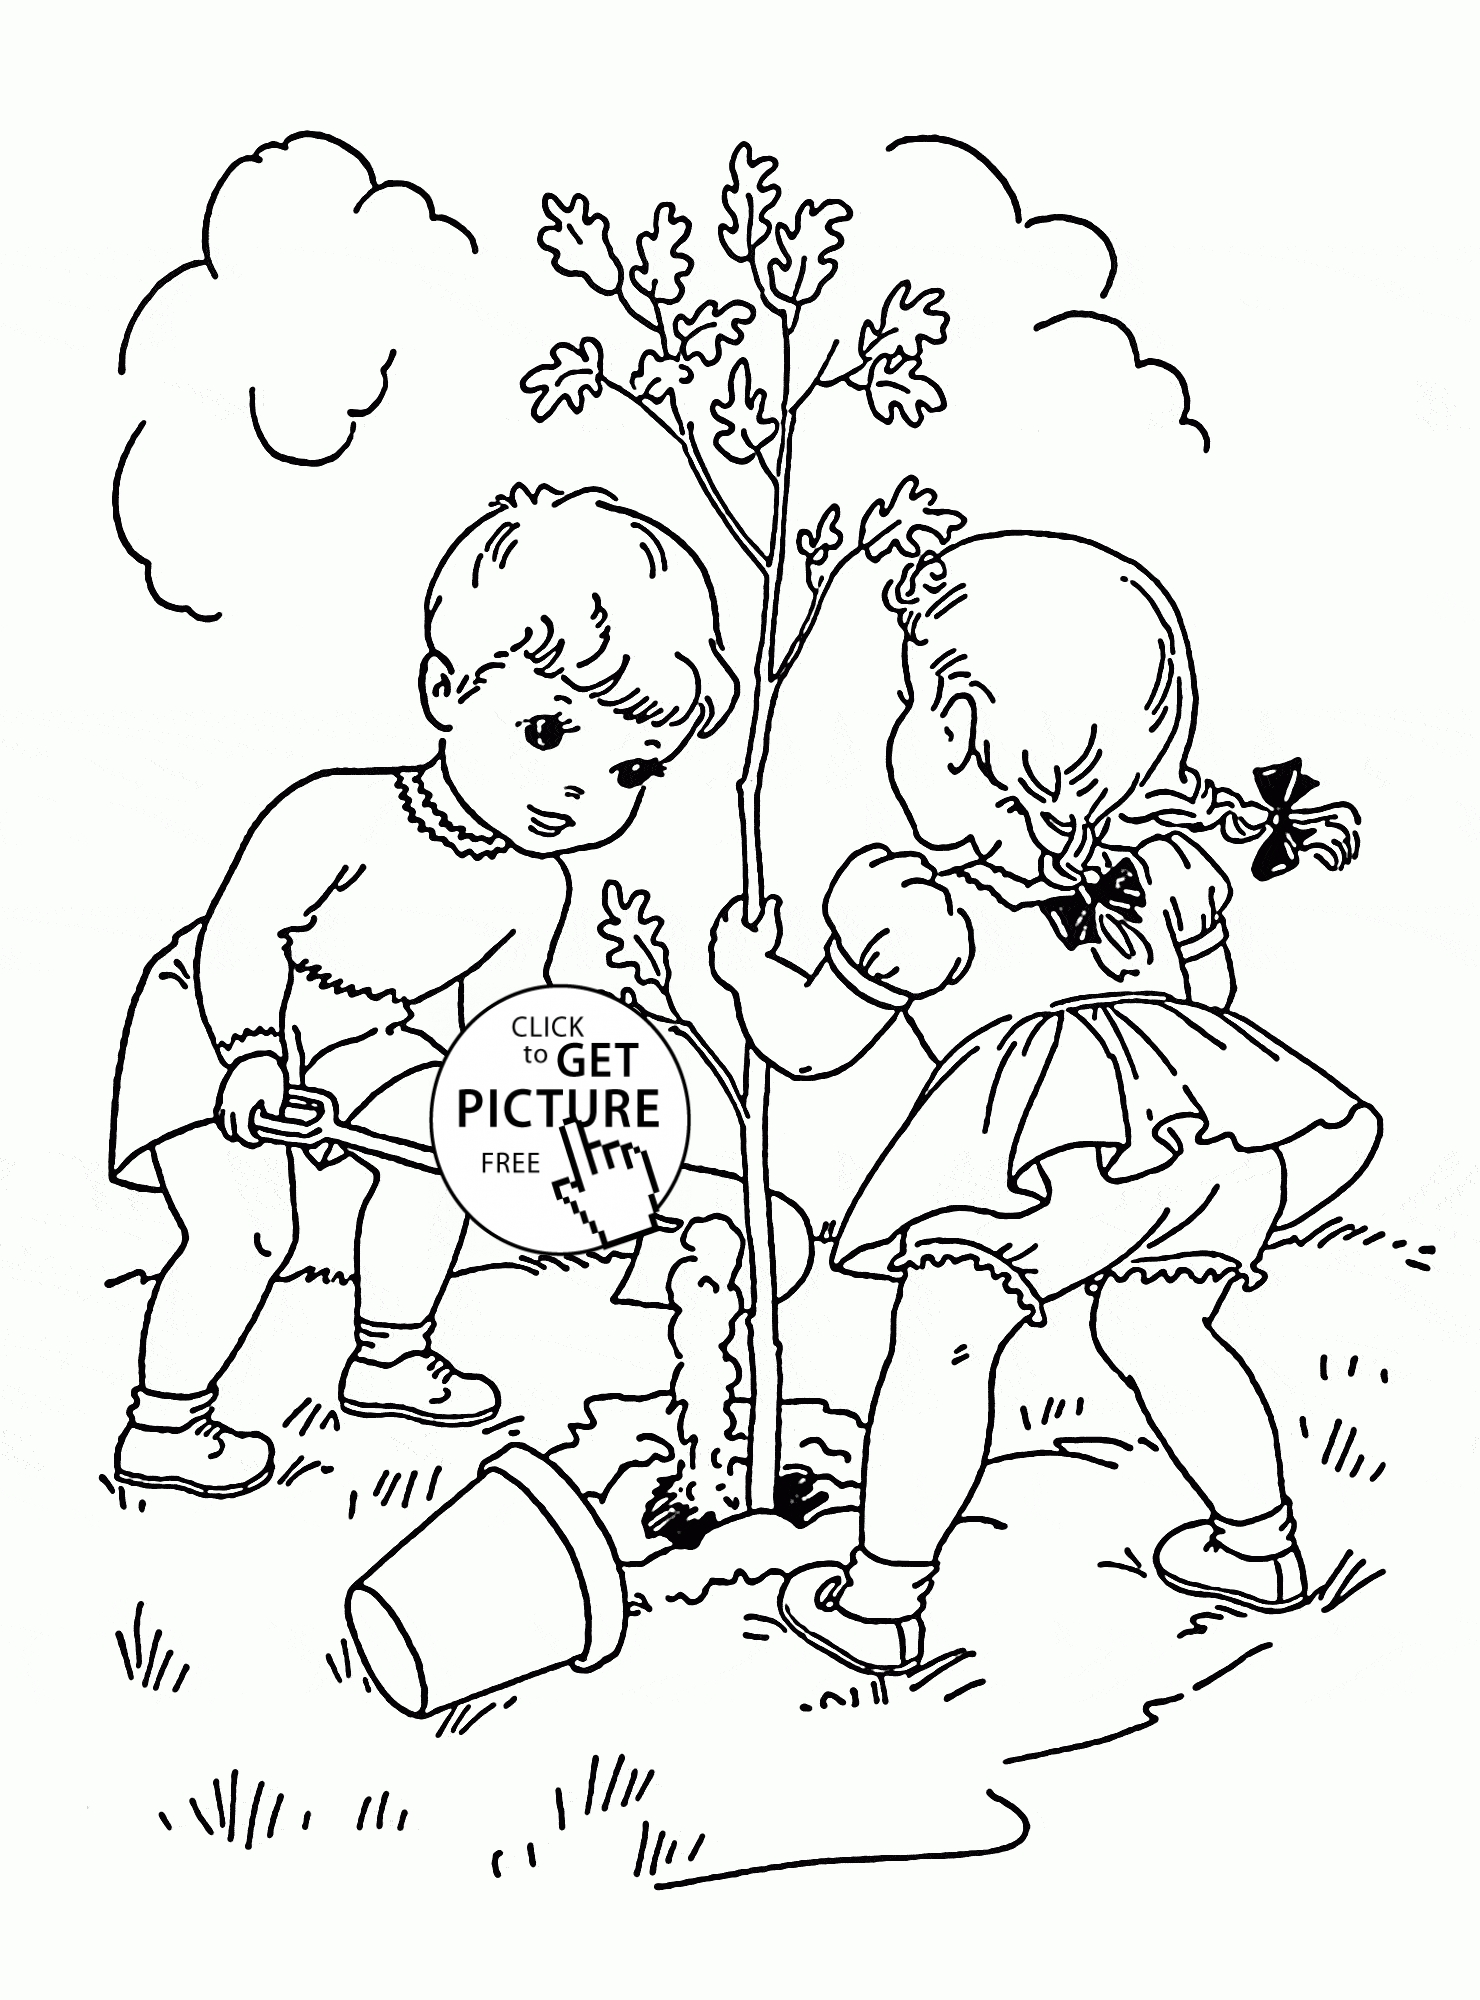 Coloring Pages for Kid - Children Plant Tree Coloring Page for Kids Spring